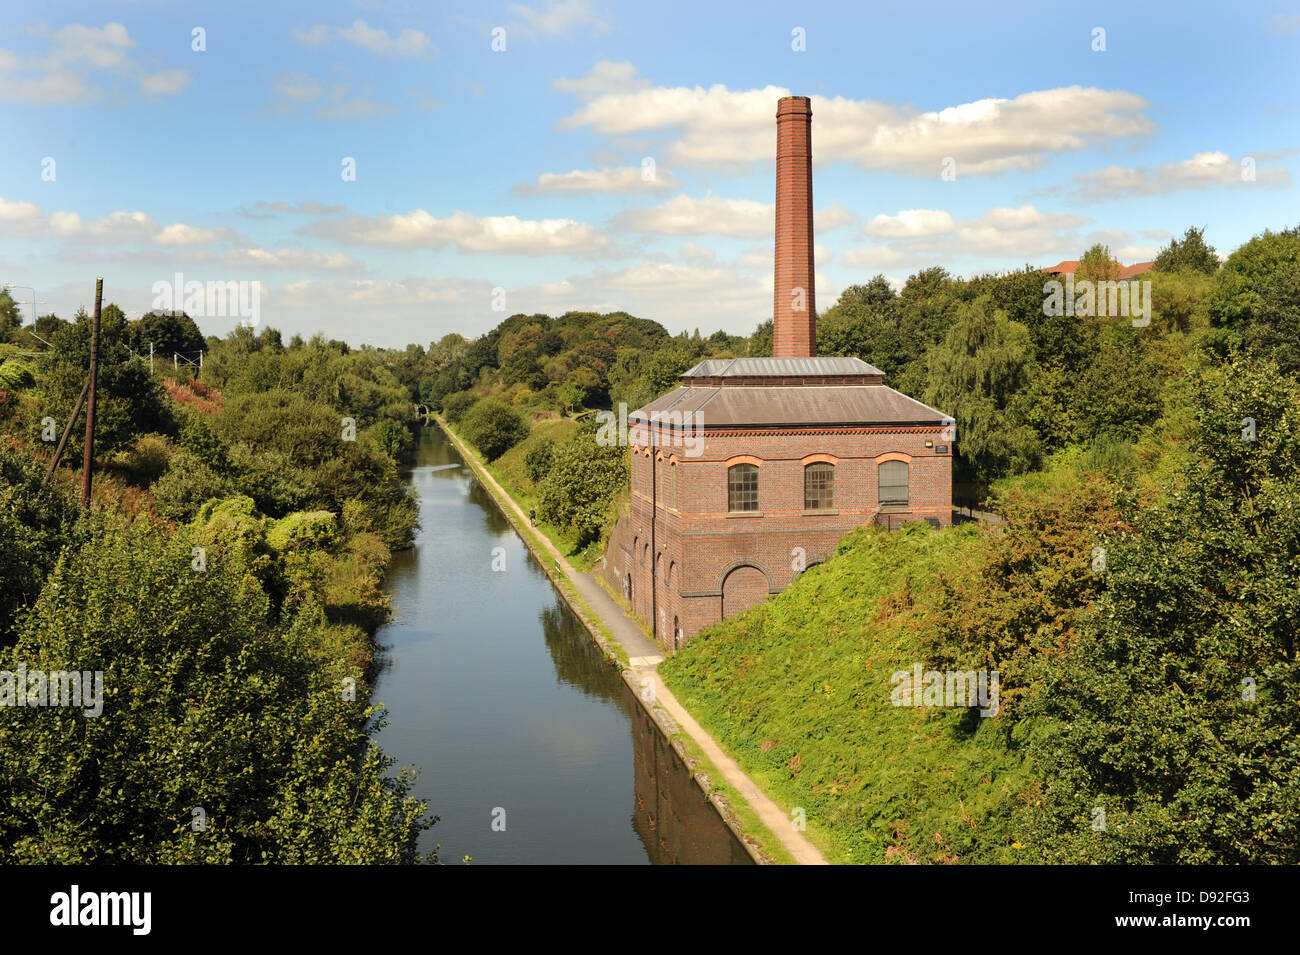 The new Smethwick Pumping Station in Sandwell and the New Birmingham Main Line Canal - Stock Image